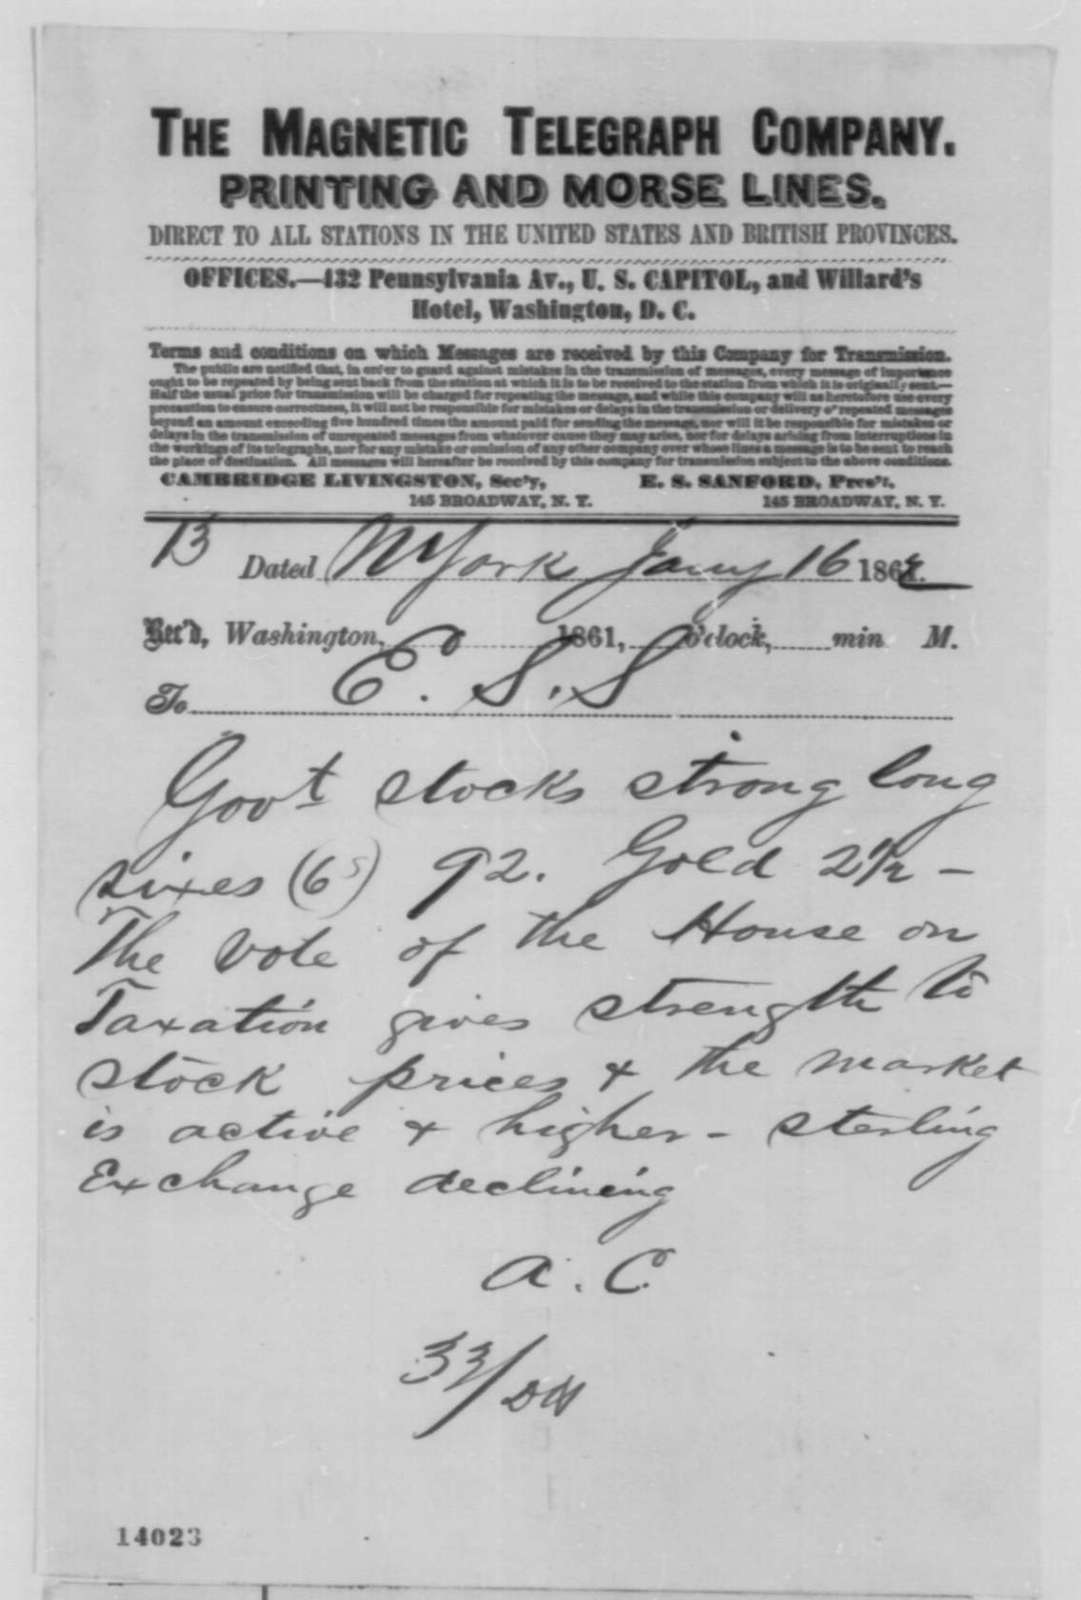 A. Chester to Edward S. Sanford, Thursday, January 16, 1862  (Telegram reporting financial news)